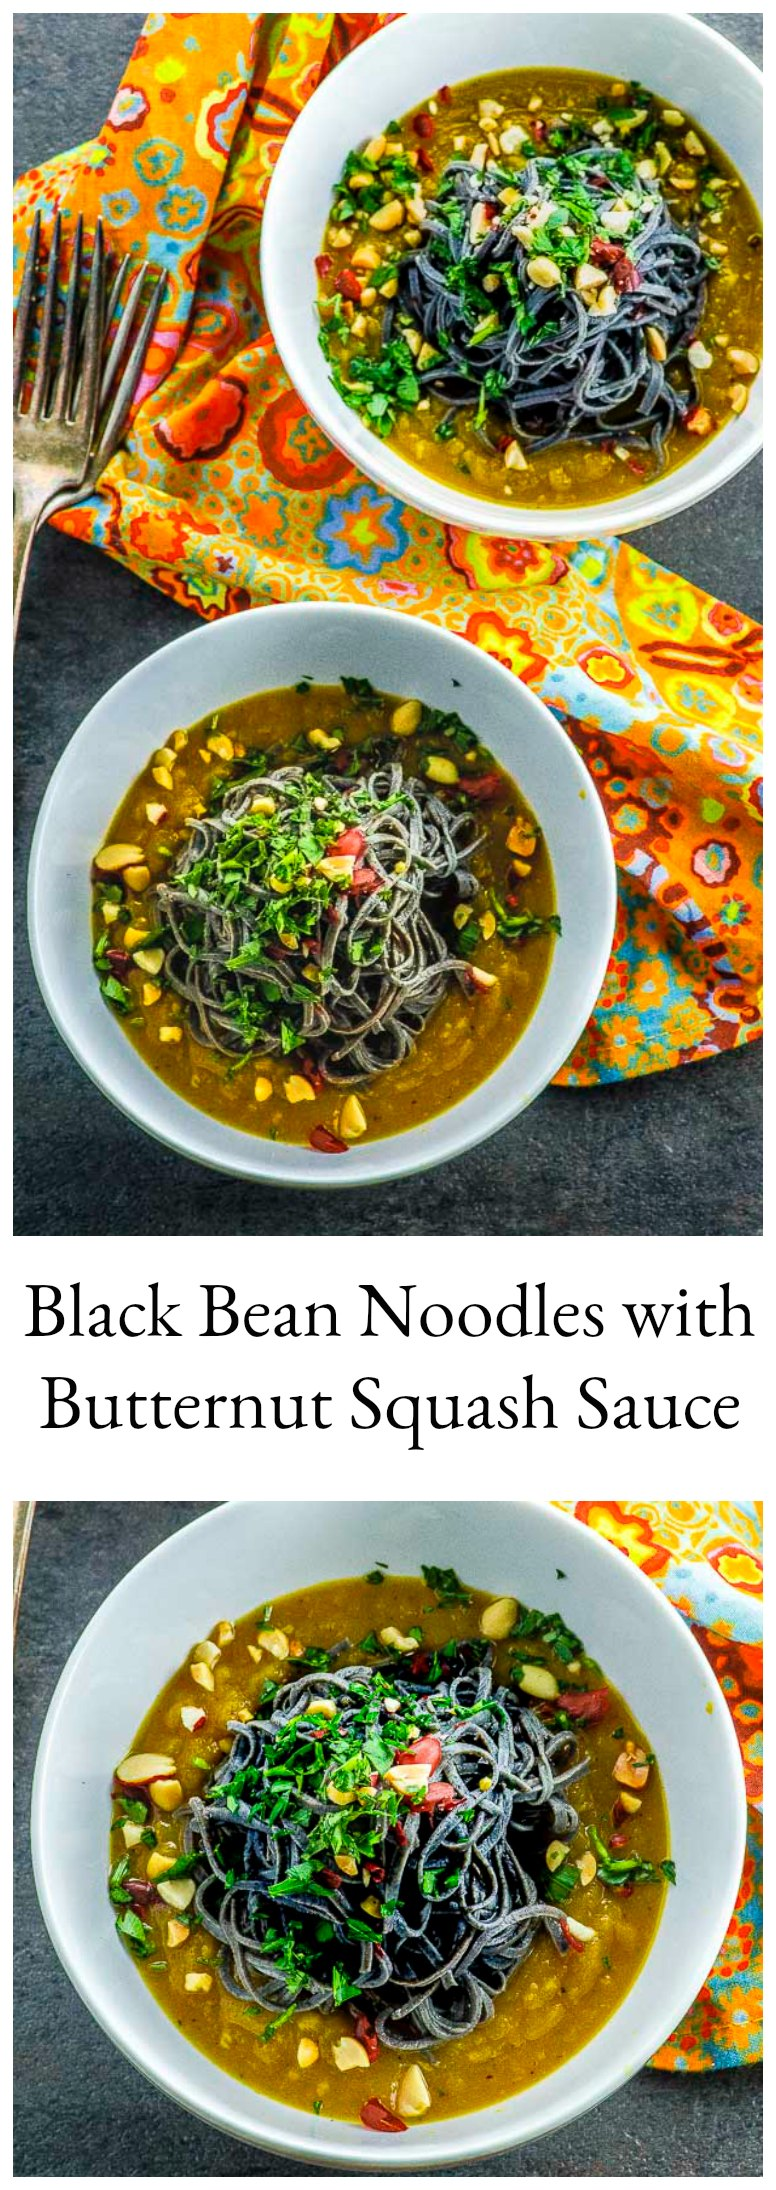 The flavor of these high protein Black Bean Noodles with Butternut Squash Sauce is enhanced with the light and creamy butternut squash sauce with Asian influenced flavors. Ready in 30 minutes !